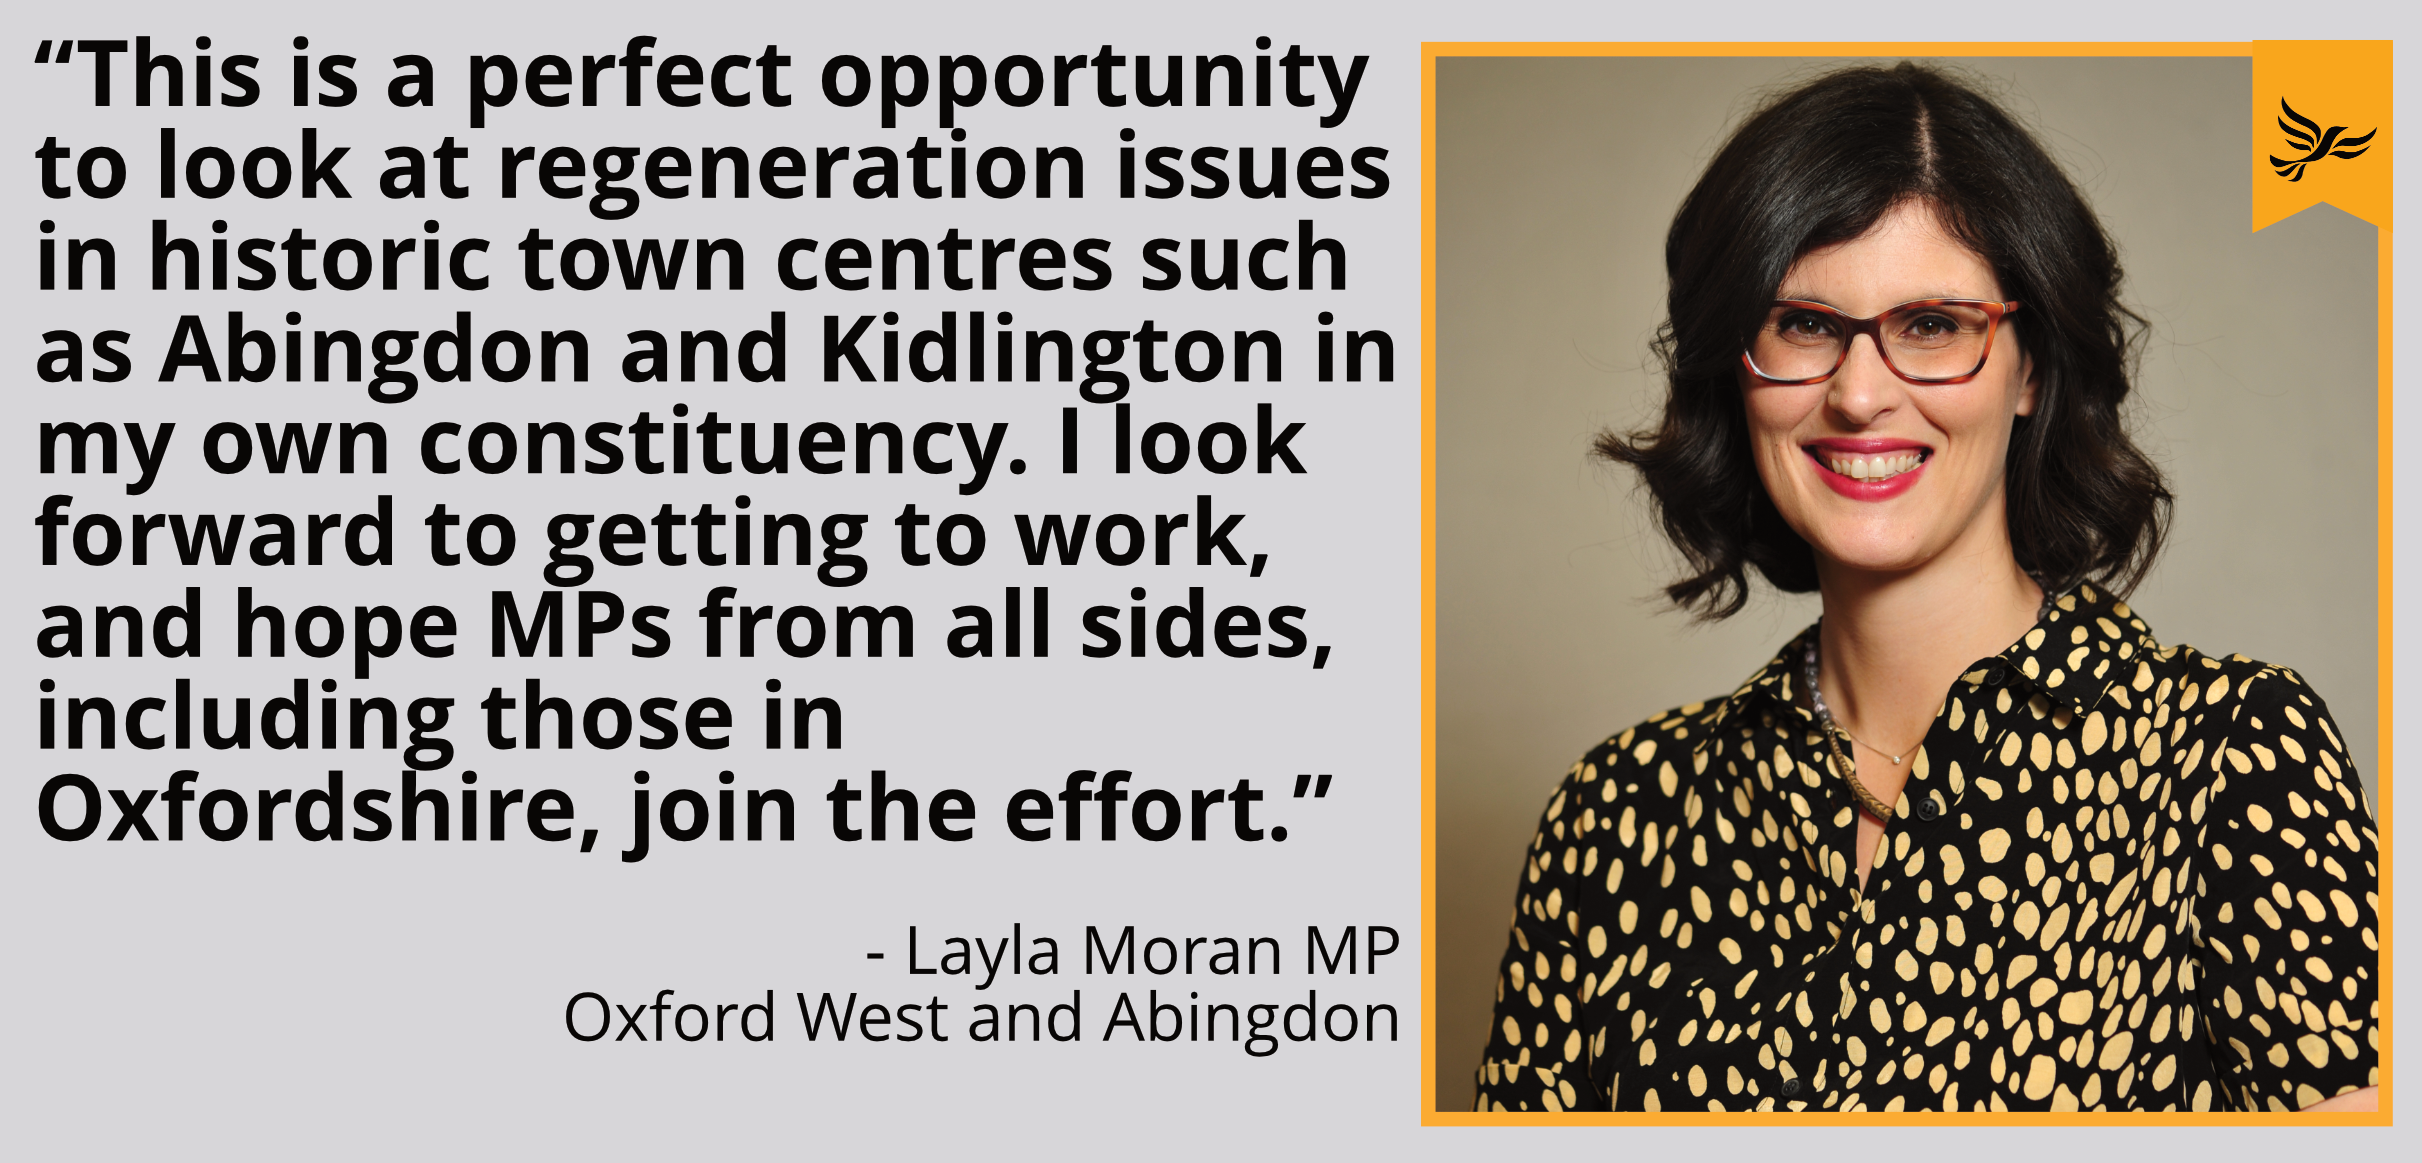 """This is a perfect opportunity to look at regeneration issues in historic town centres such as Abingdon and Kidlington in my own constituency.     ""I look forward to getting to work, and hope MPs from all sides, including those in Oxfordshire, join the effort."""